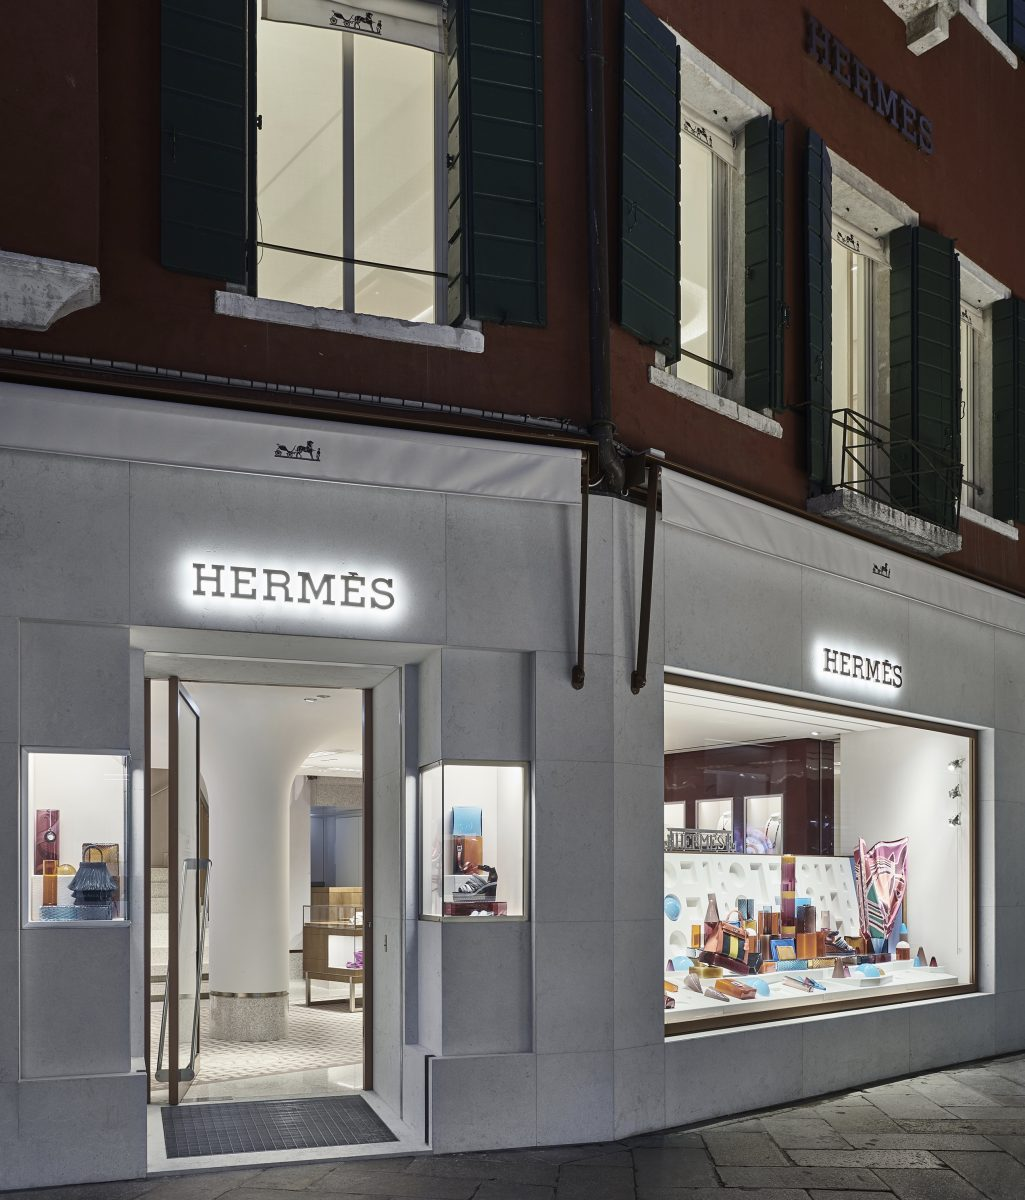 Hermes Display by Luca Nichetto